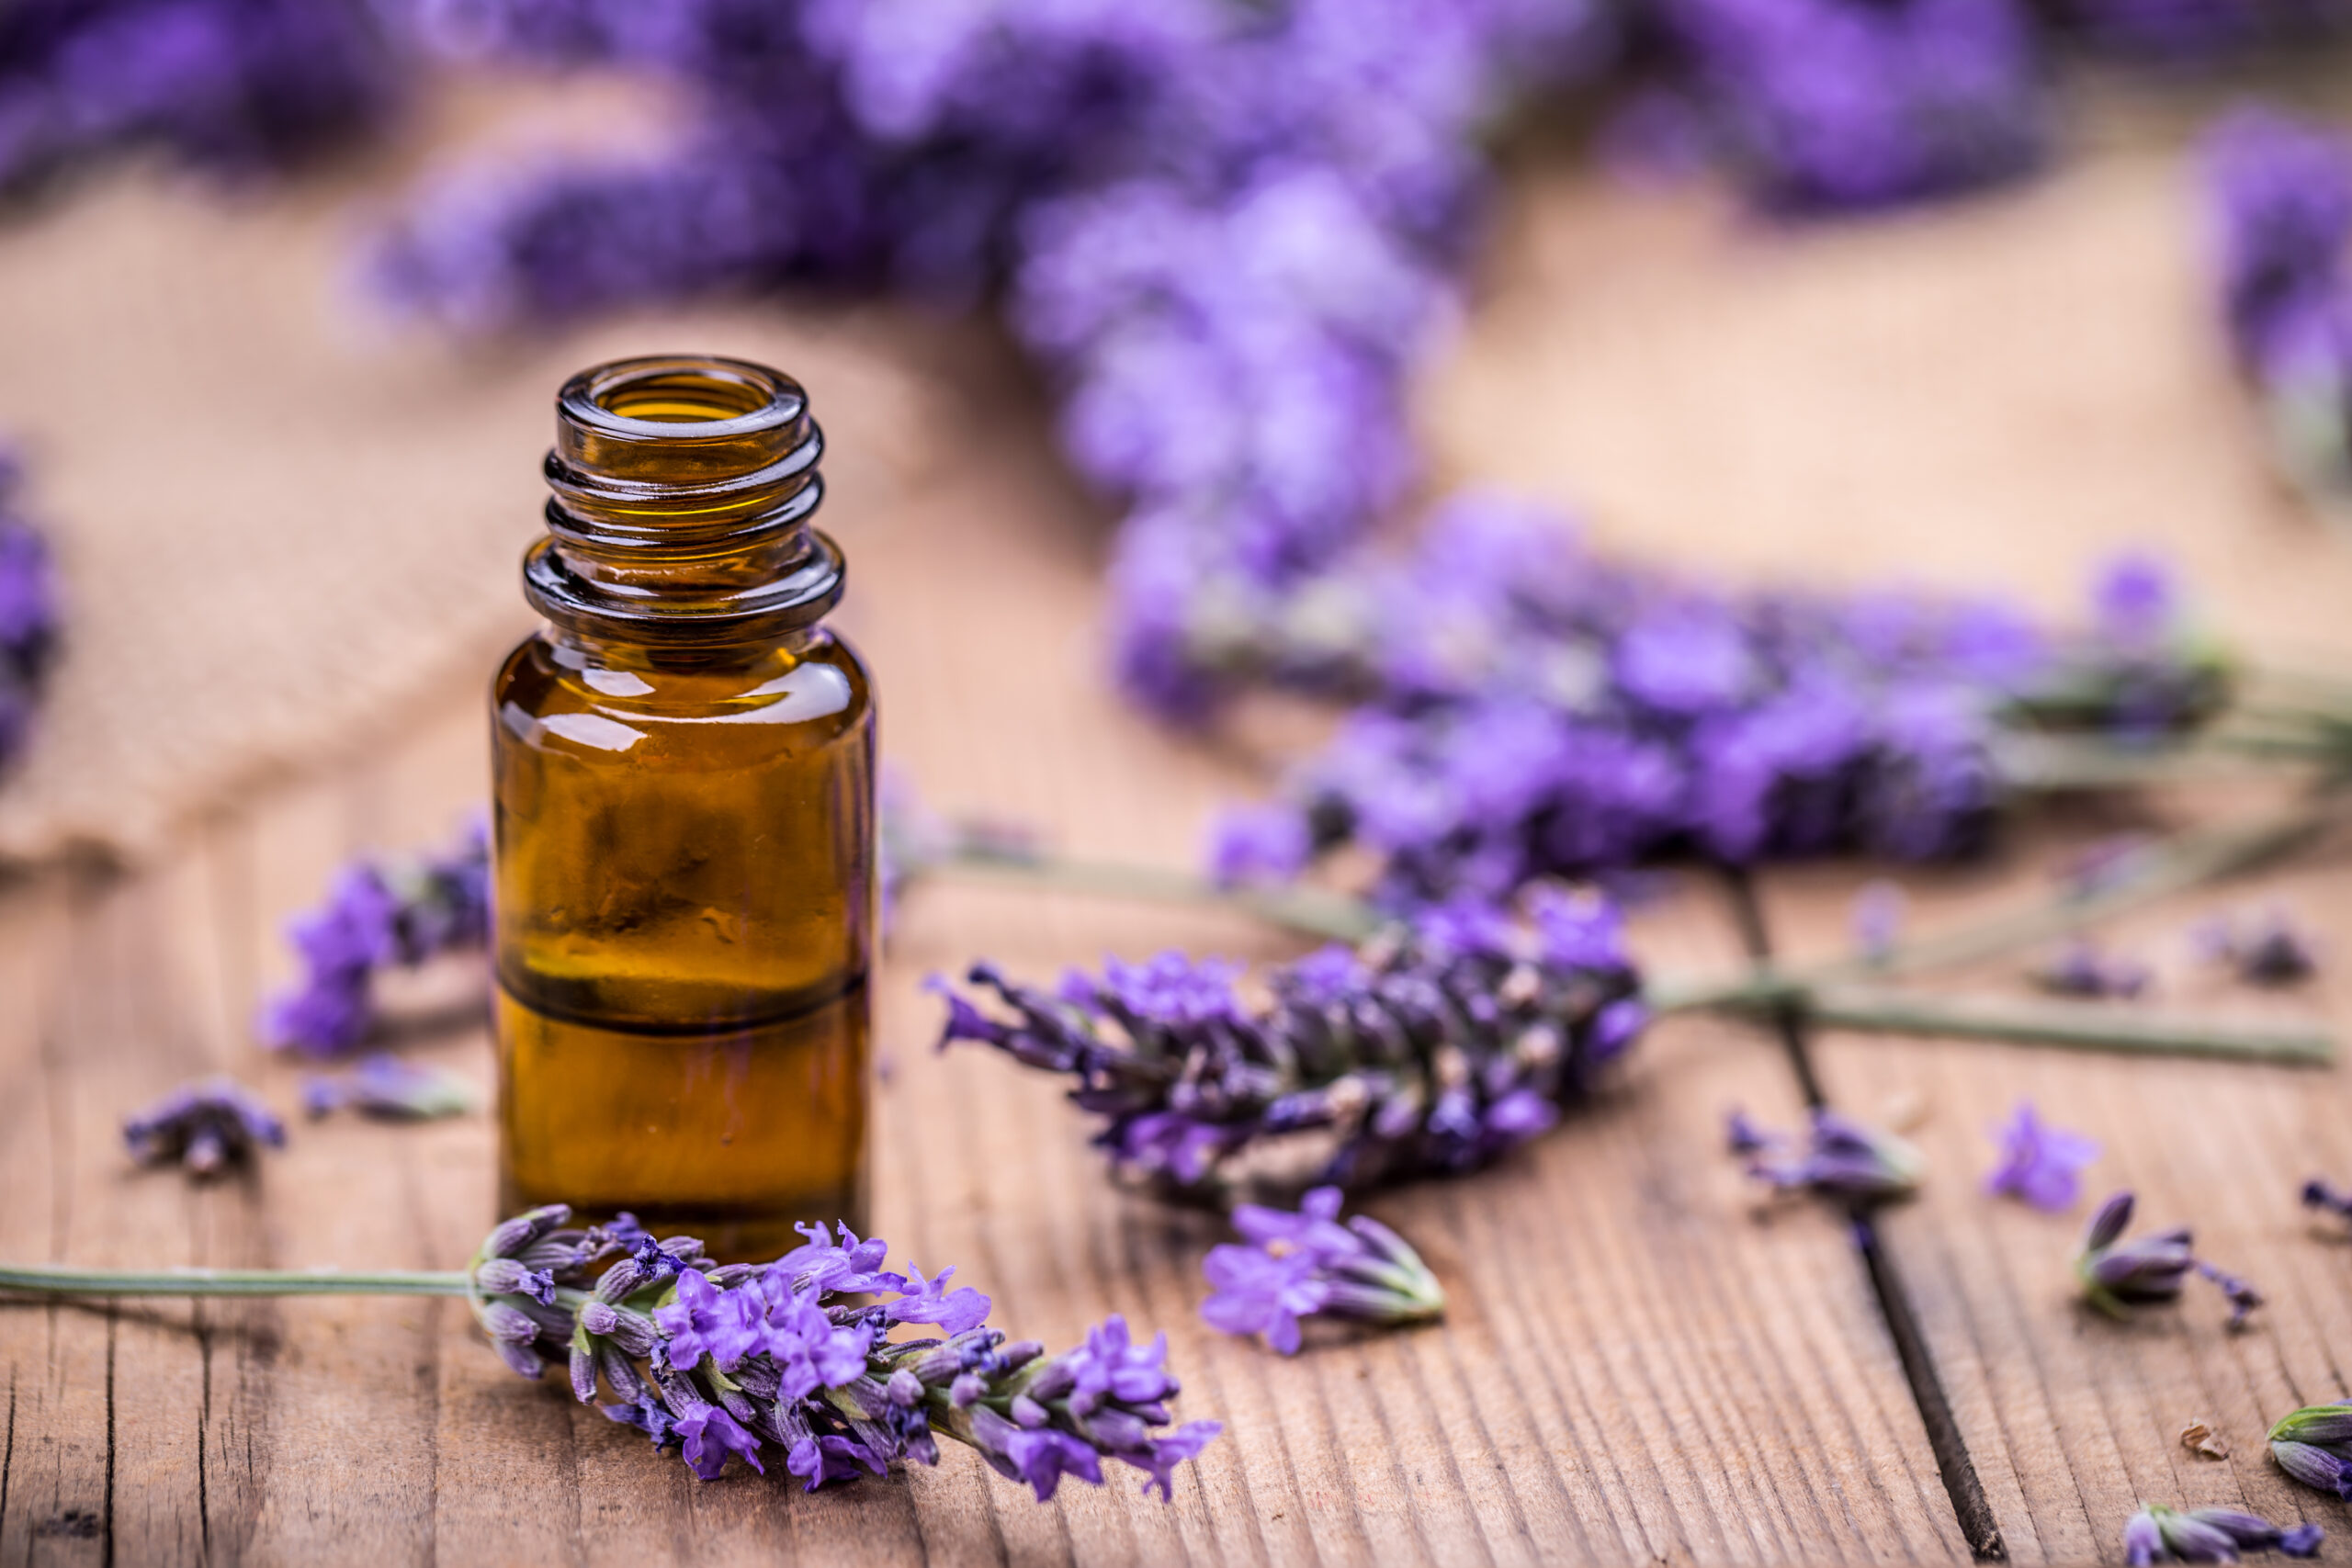 Lavender Essential Oil Distillation Workshop